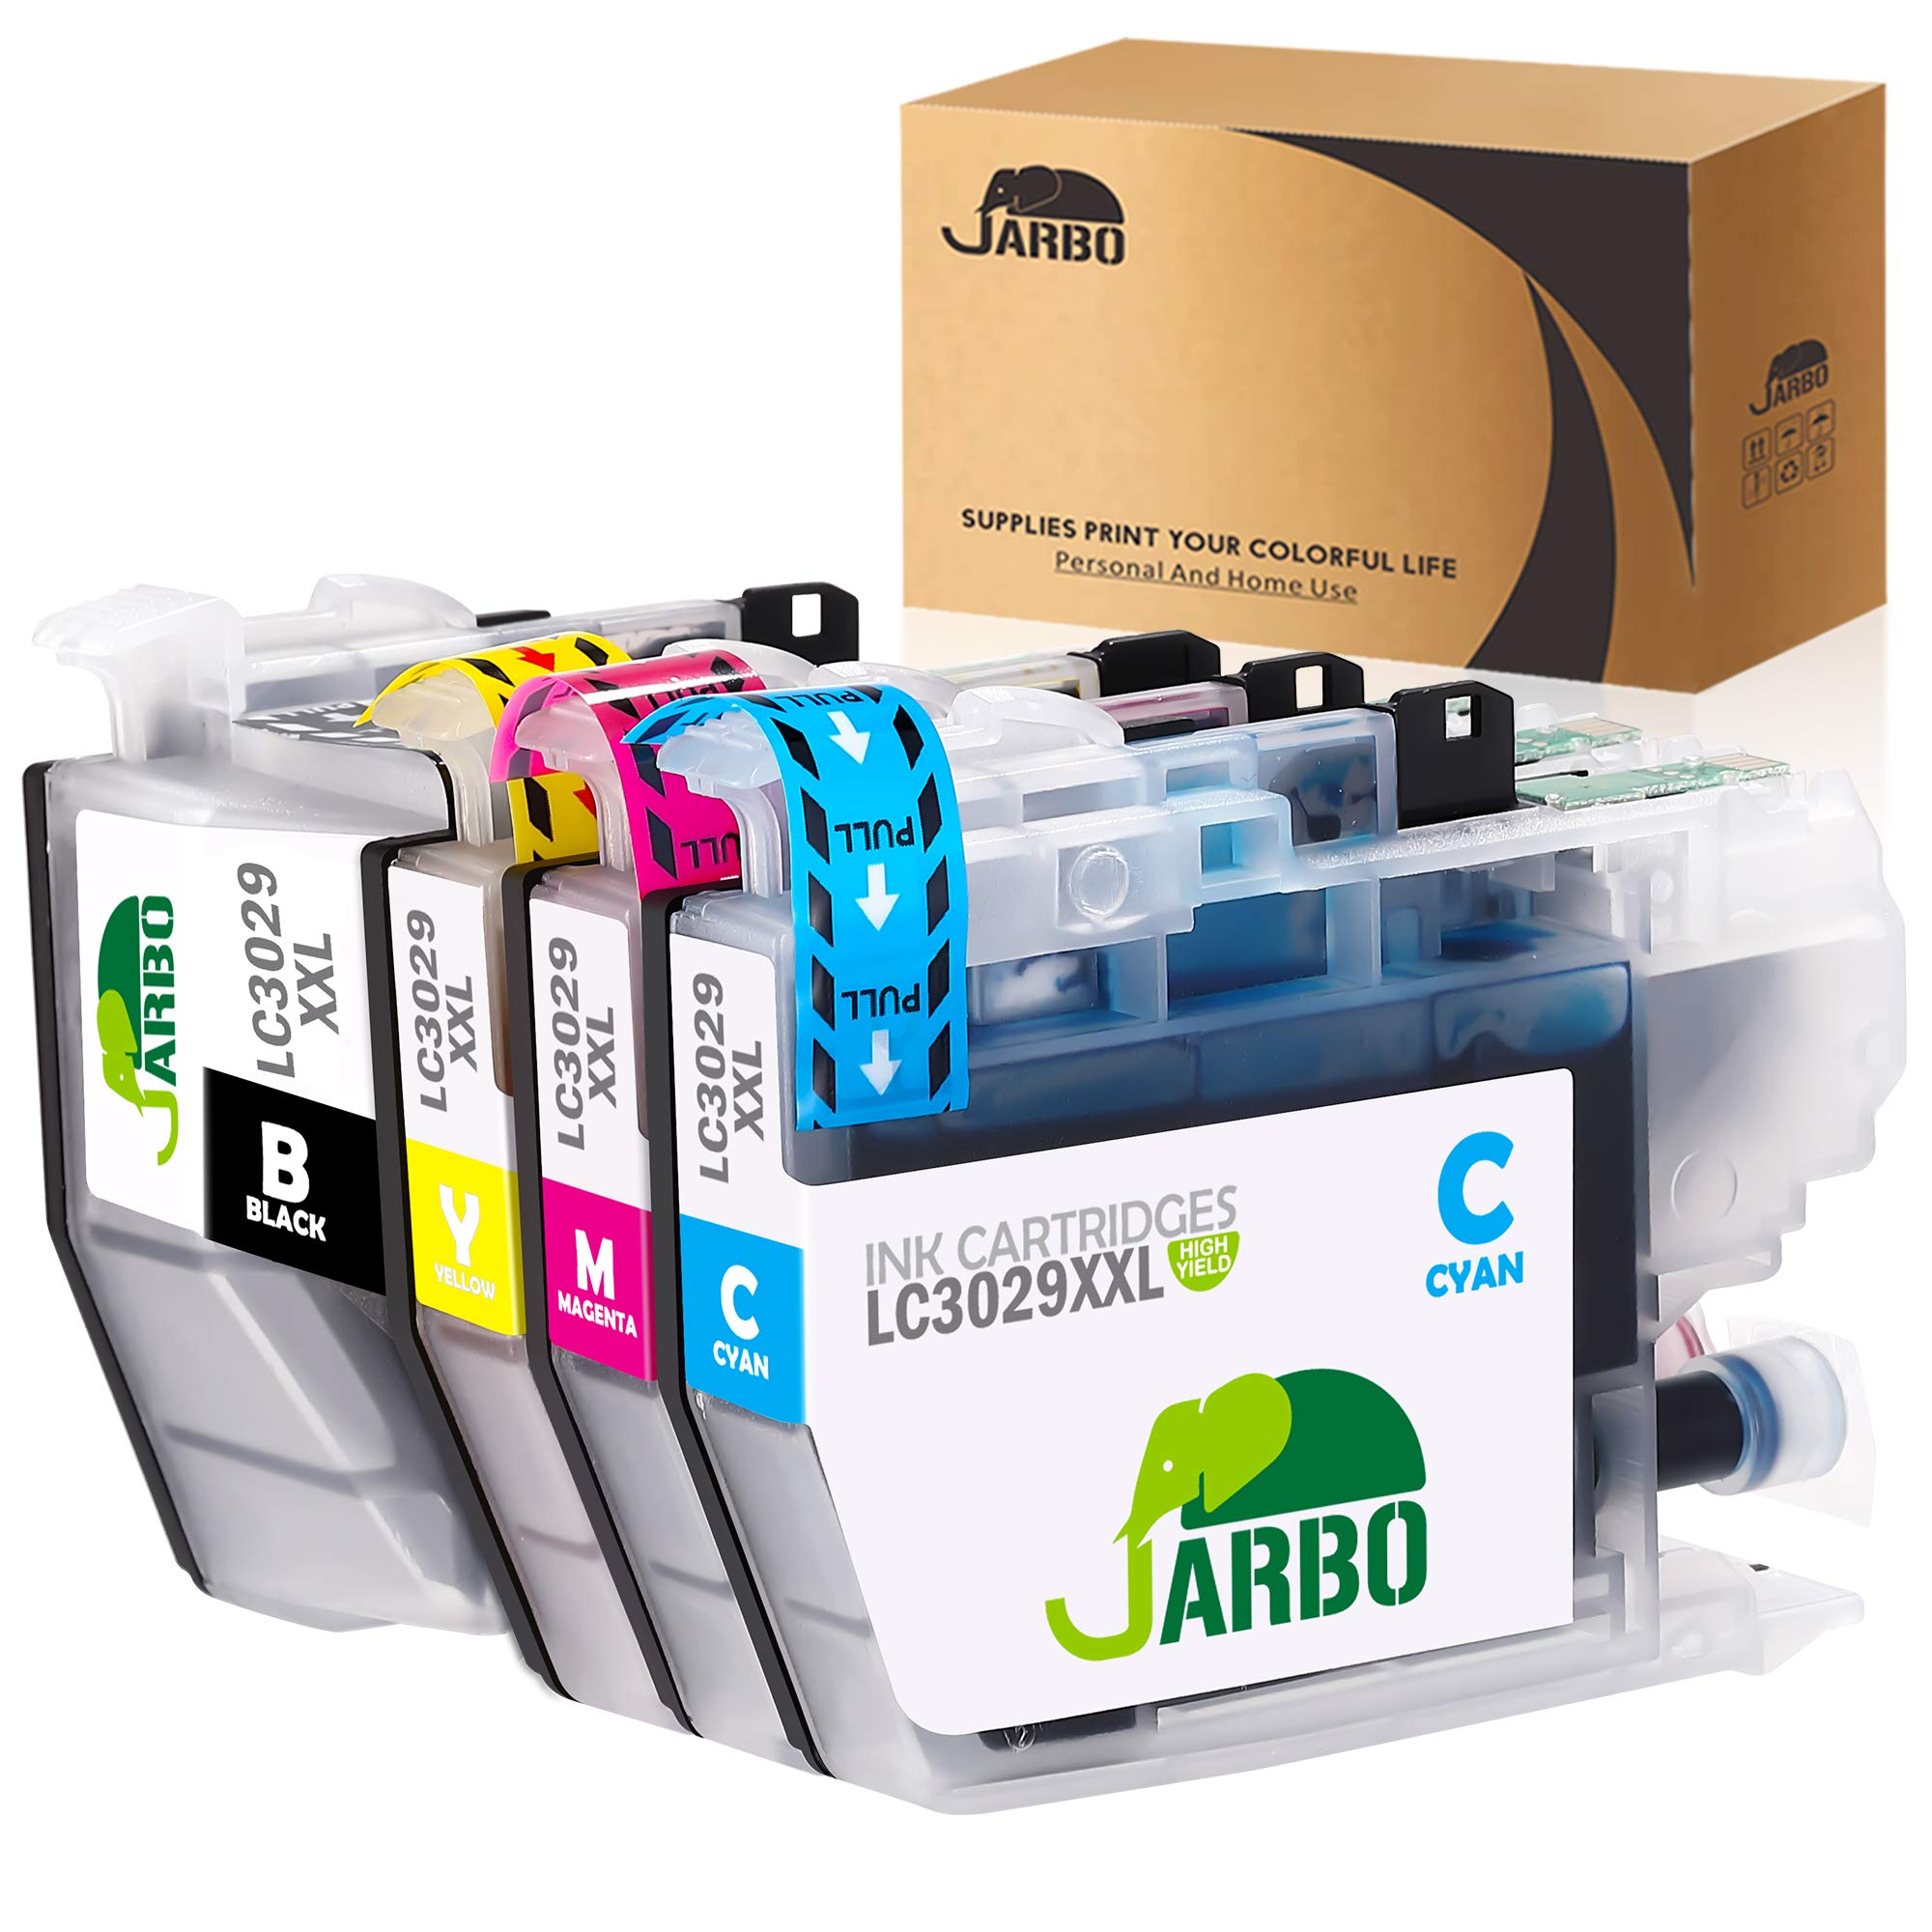 JARBO Compatible Ink Cartridge Replacement for Brother LC3029XXL 1B, 1C, 1M, 1Y 1 Set Compatible with Brother MFC-J5830DW MFC-J6535DW MFC-J5930DW MFC-J6935DW MFC-J5830DWXL MFC-J6535DWXL Printer